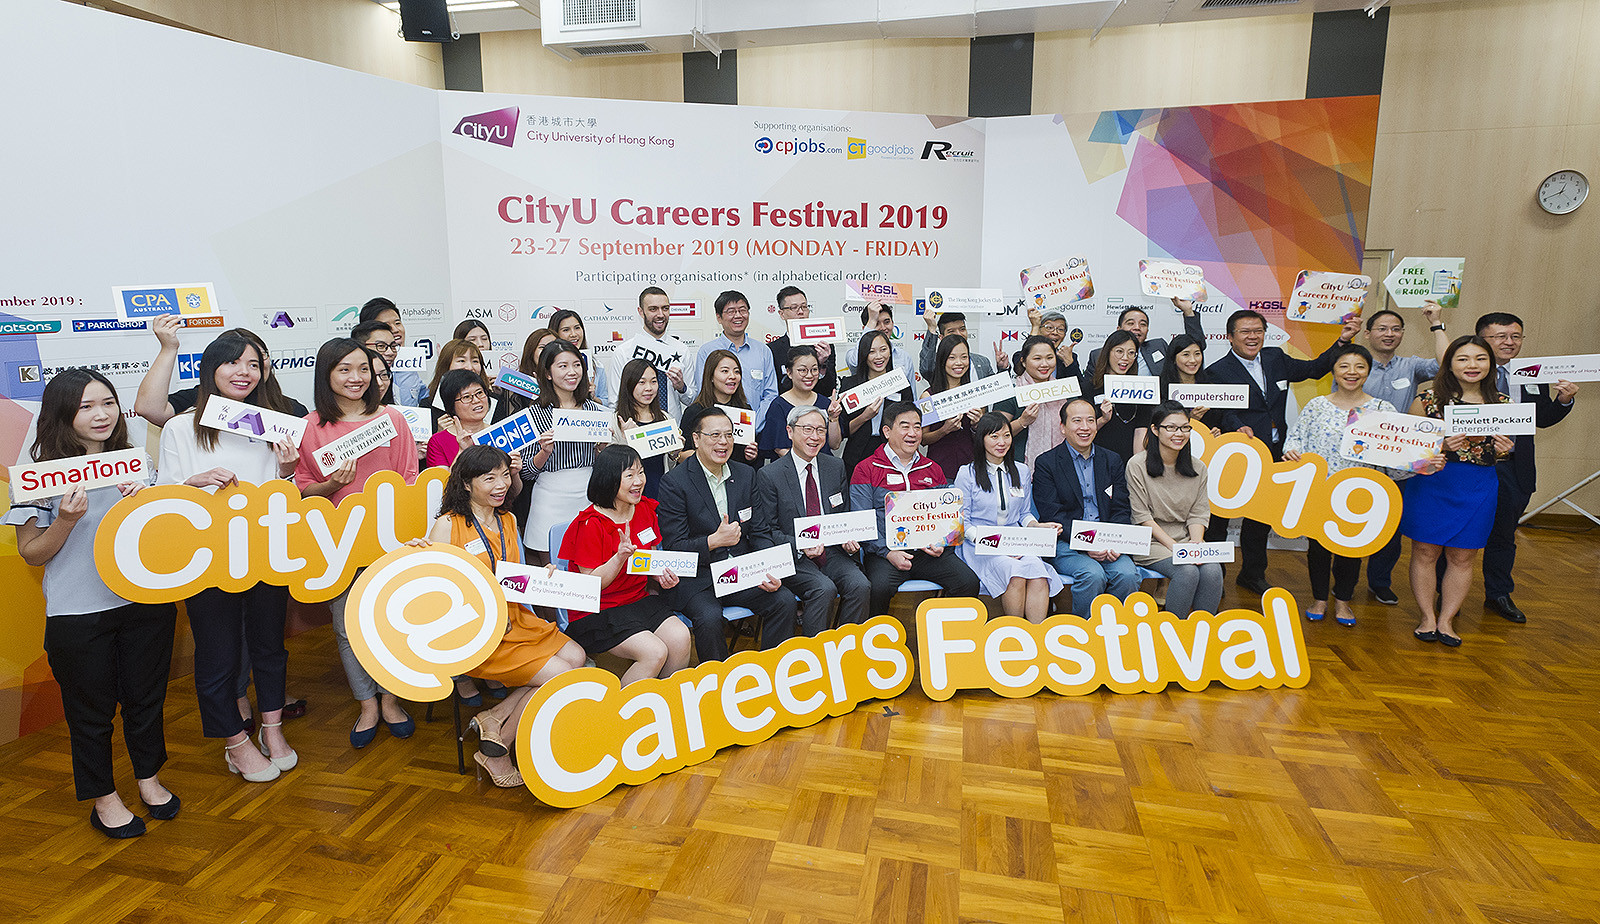 The participating employers have provided CityU students with hundreds of graduate and internship positions.